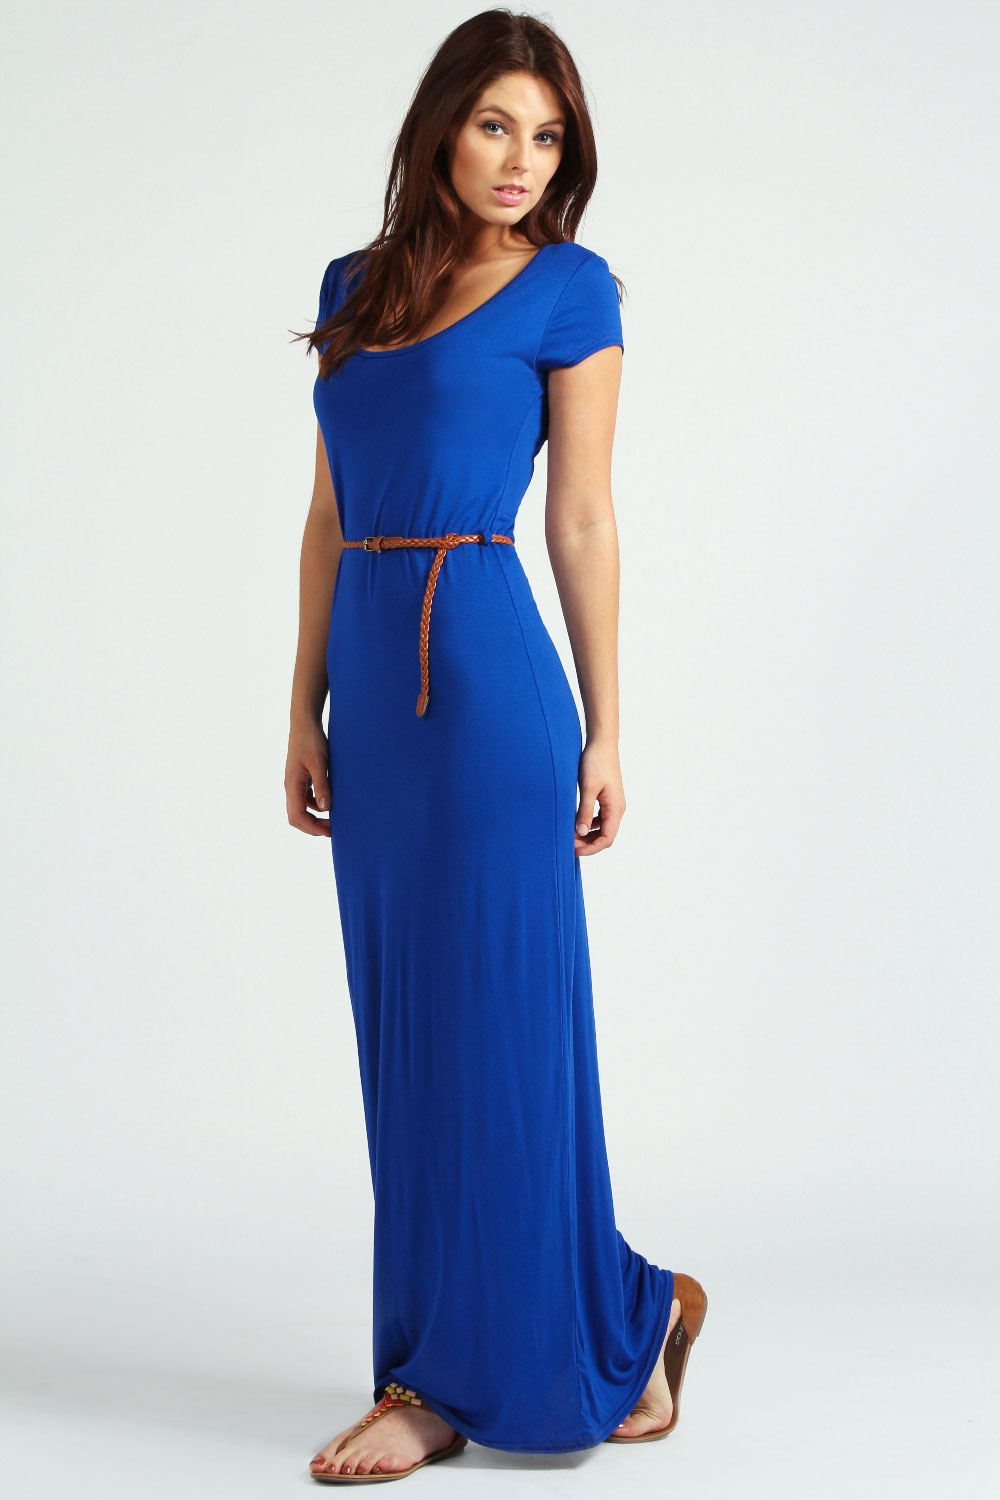 Galerry casual maxi dress with cap sleeves